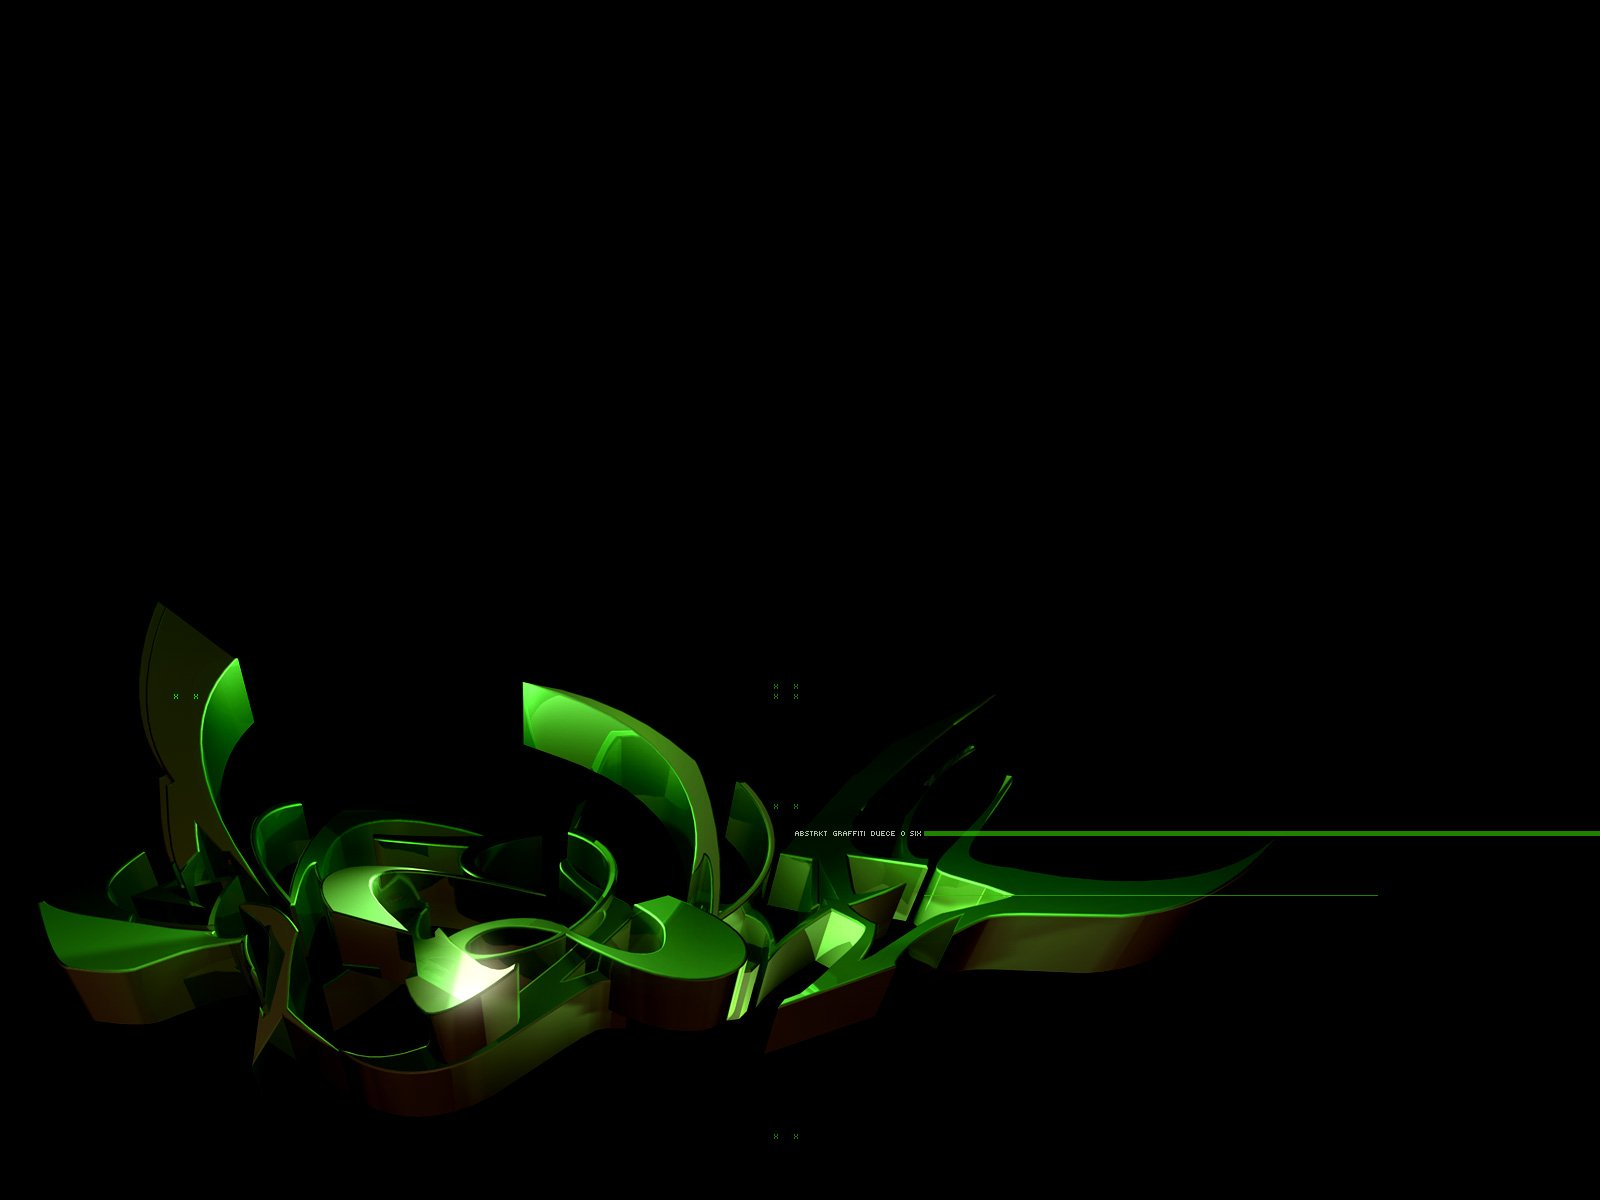 Abstract Wallpapers Graffiti of Abstract HD Wallpapers Graffiti 1600x1200